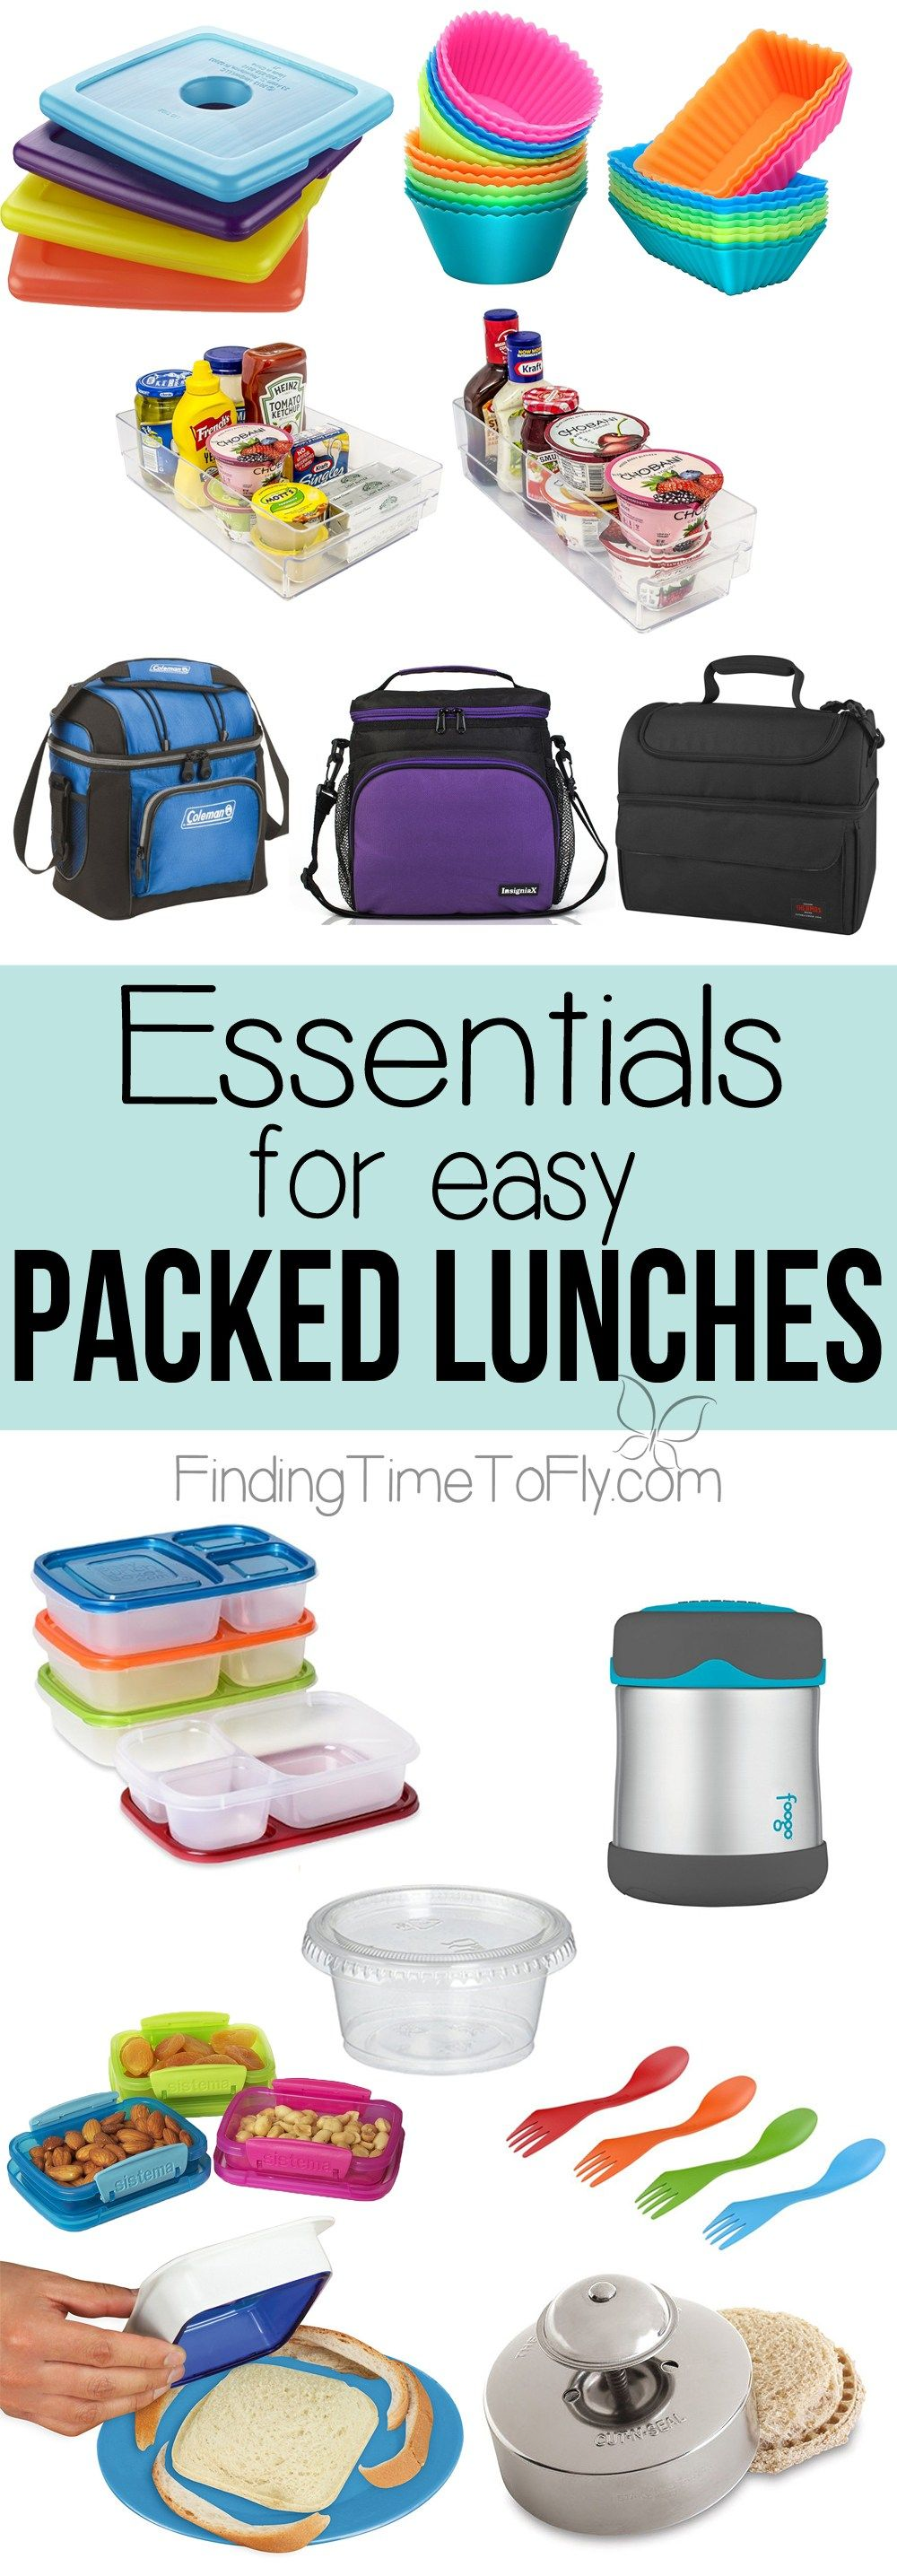 A great list of storage containers and lunch items for easy packed ...